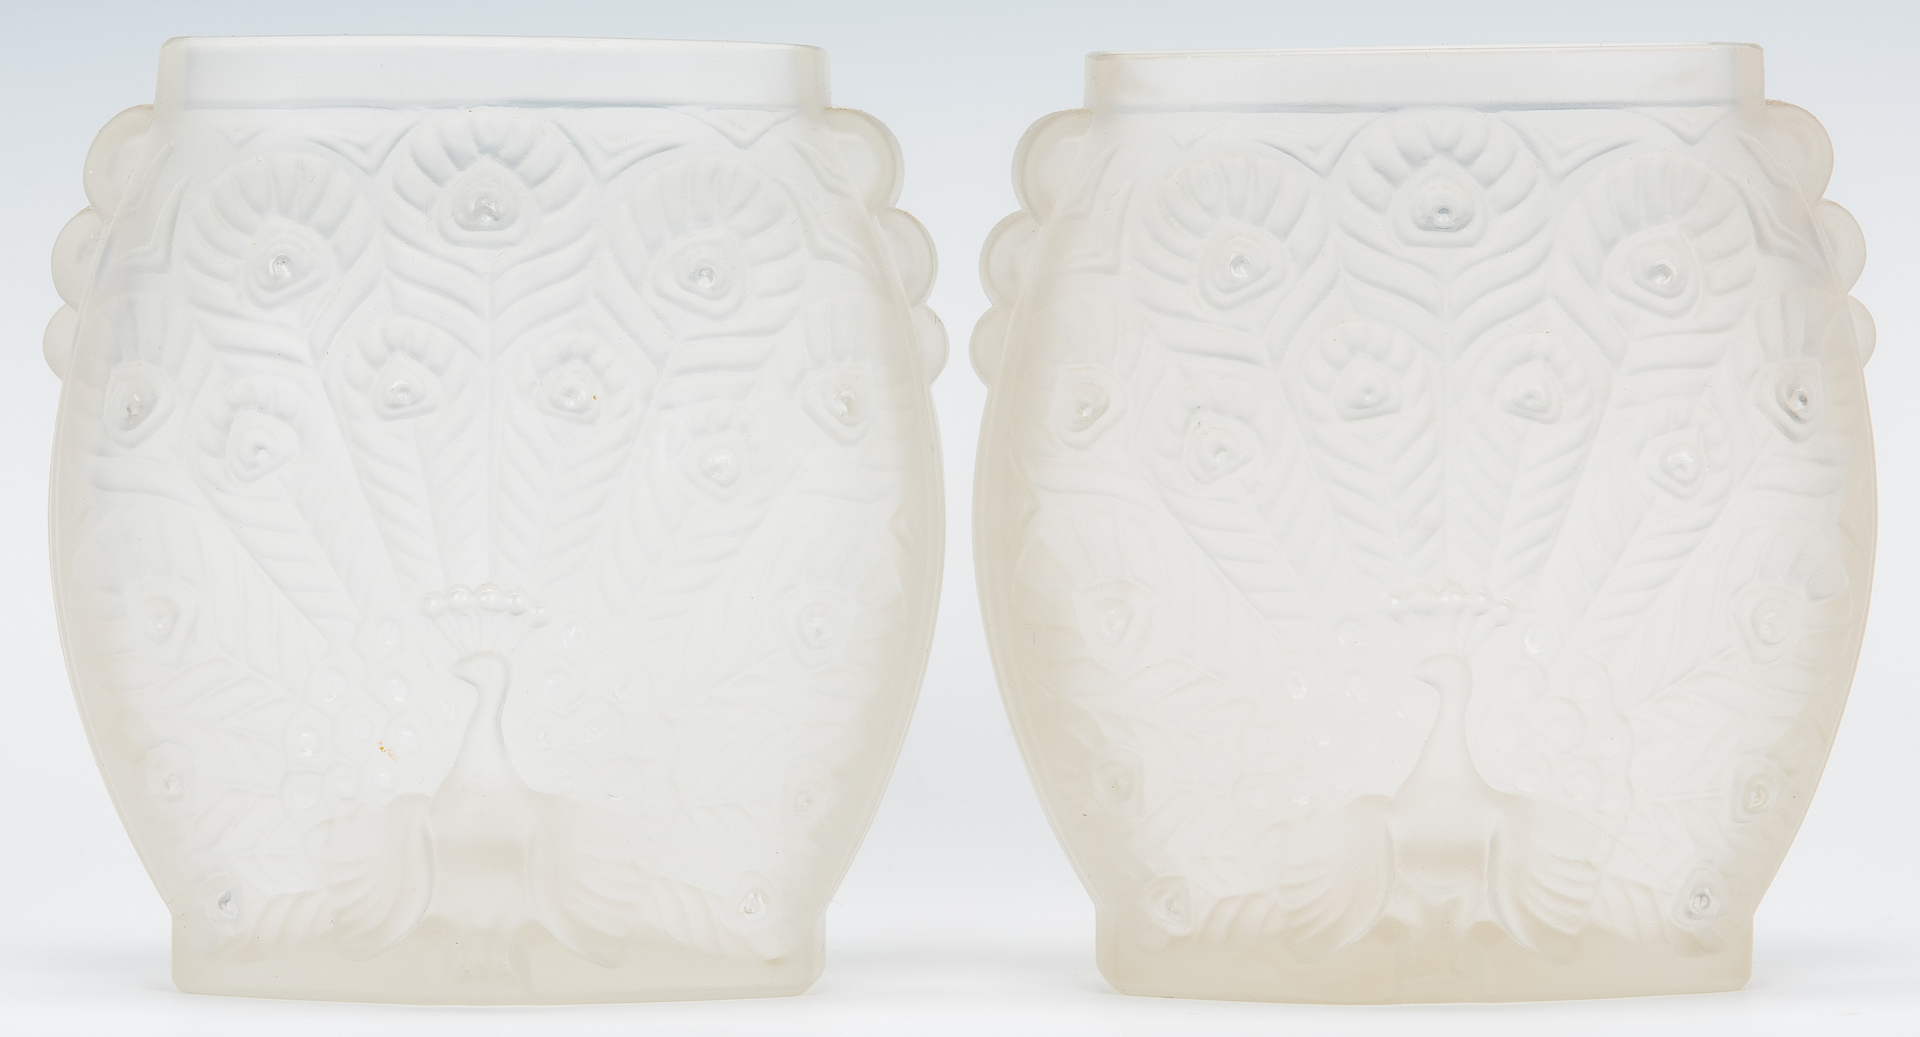 Lot 975: Daum Art Glass Vase & 3 Frosted Glass Items, 4 items